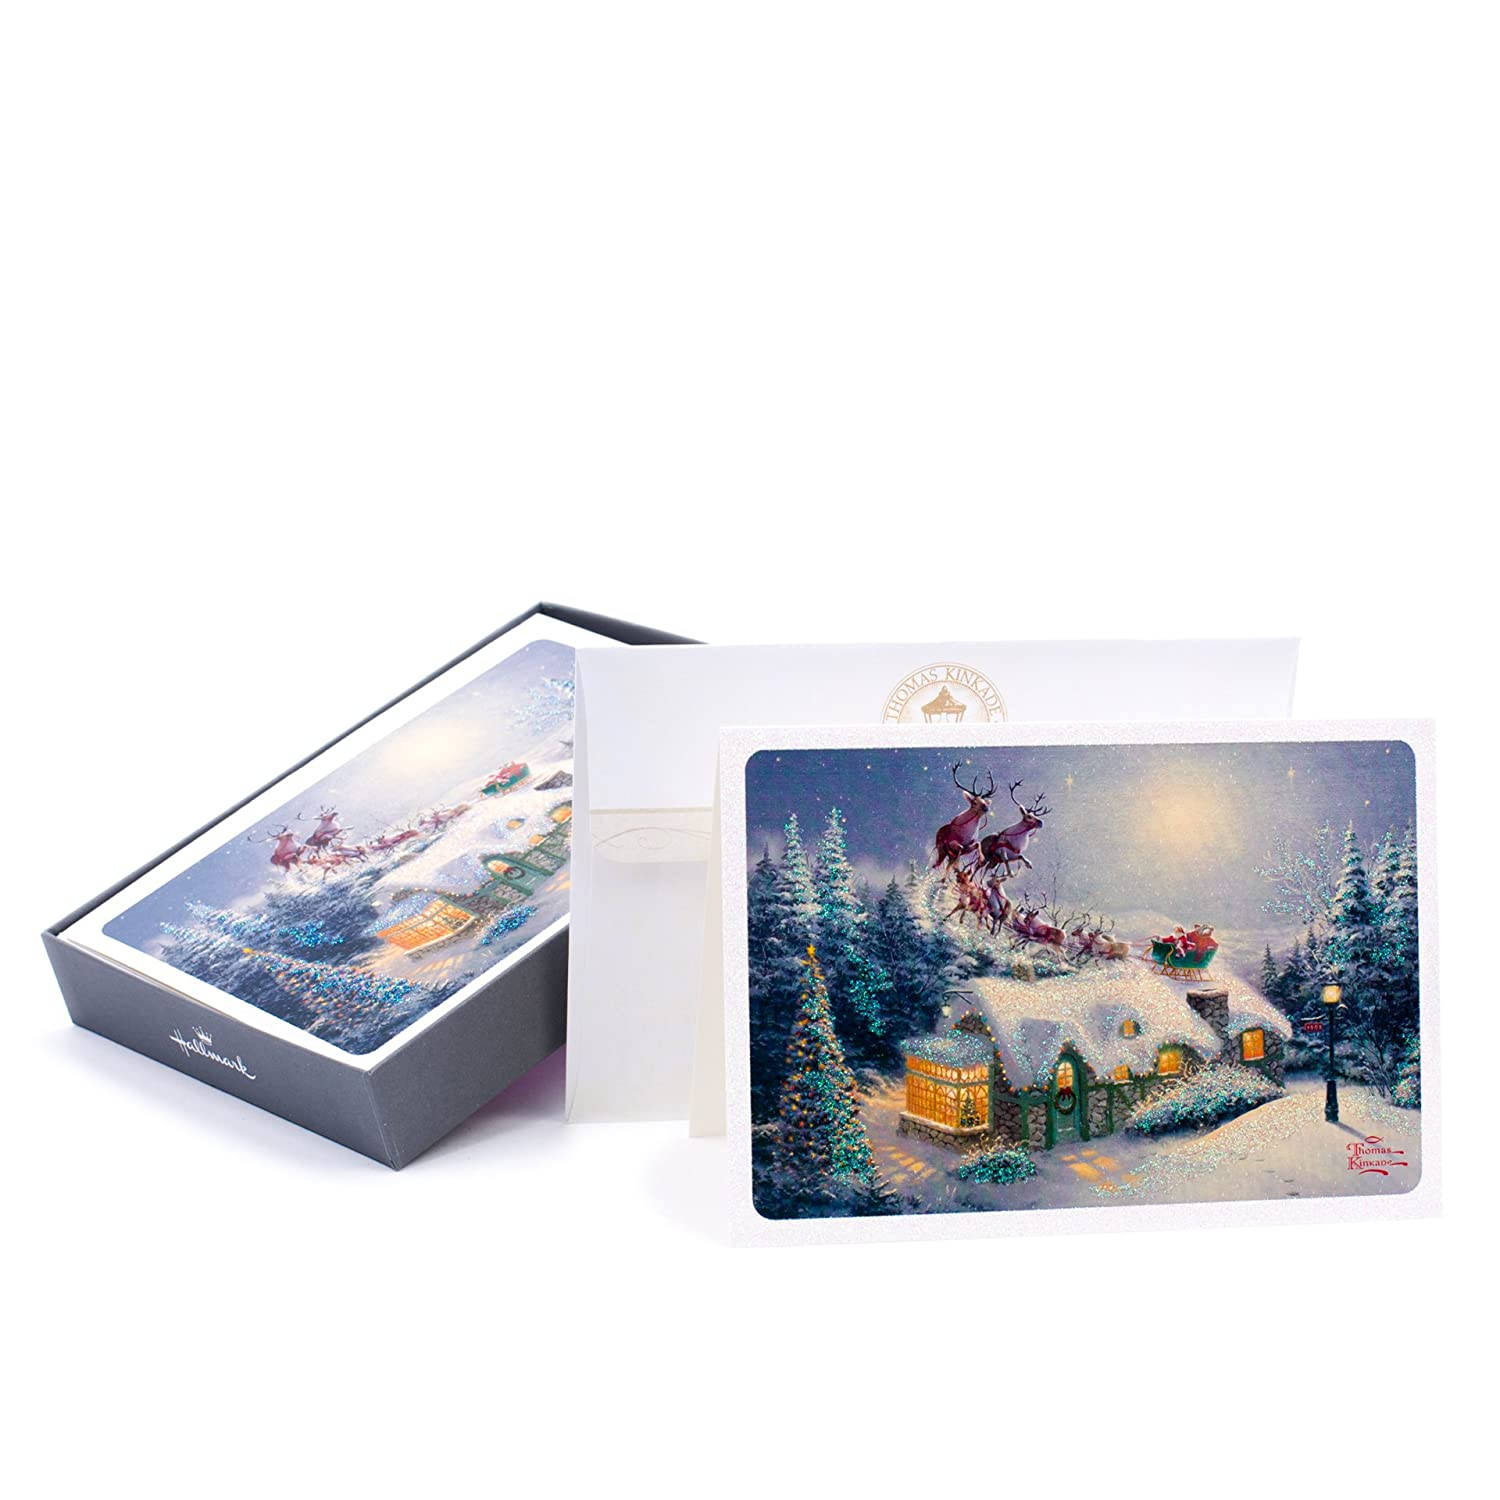 Hallmark Thomas Kinkade Boxed Christmas Cards, Santa (16 Cards and 17 Envelopes)